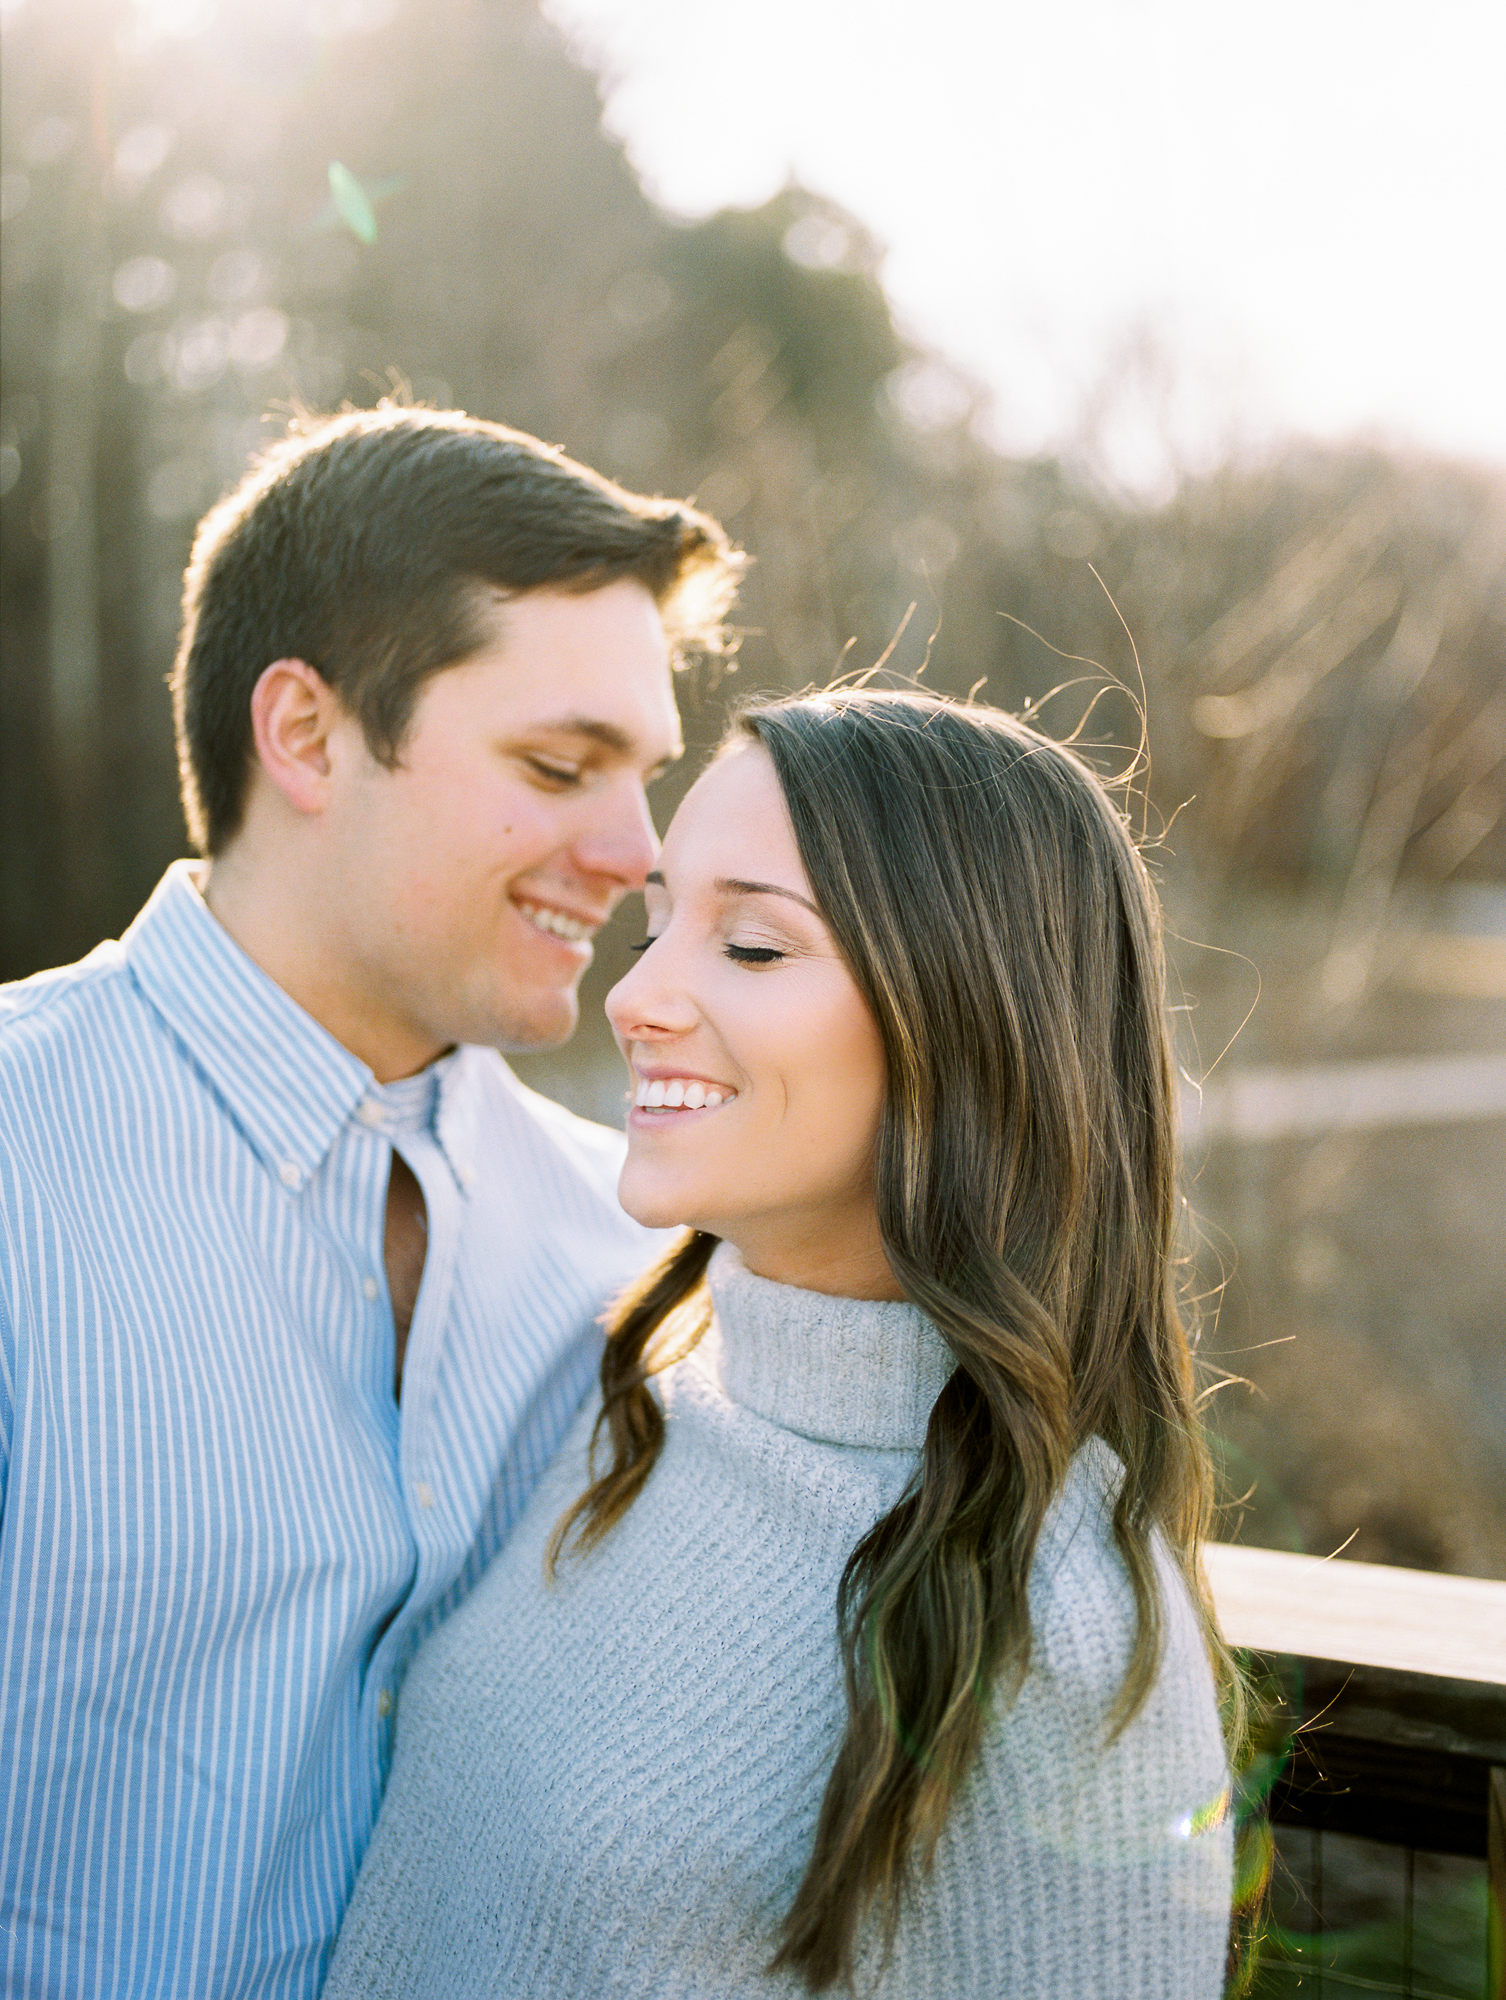 Christi & Michael - Engaged - © Kaitlyn Stoddard Photography-2-2.jpg